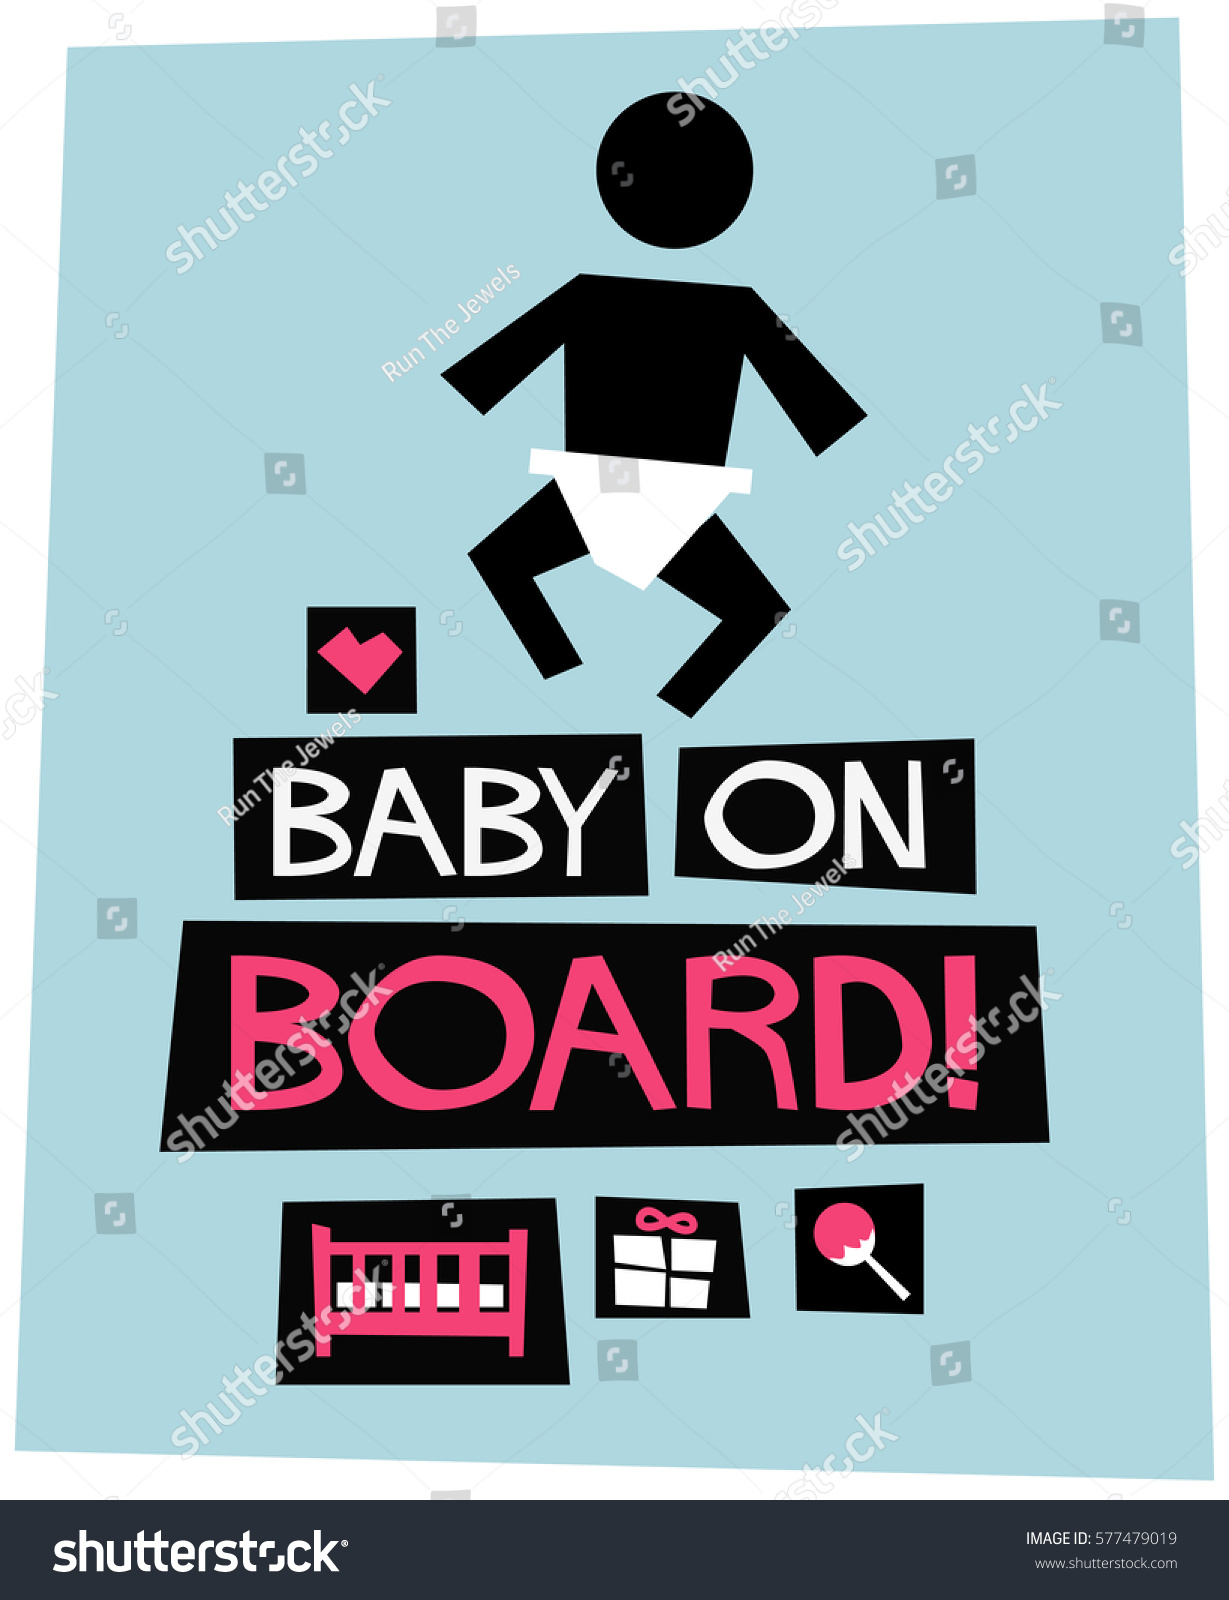 A board poster design - Baby On Board Flat Style Vector Illustration Poster Design